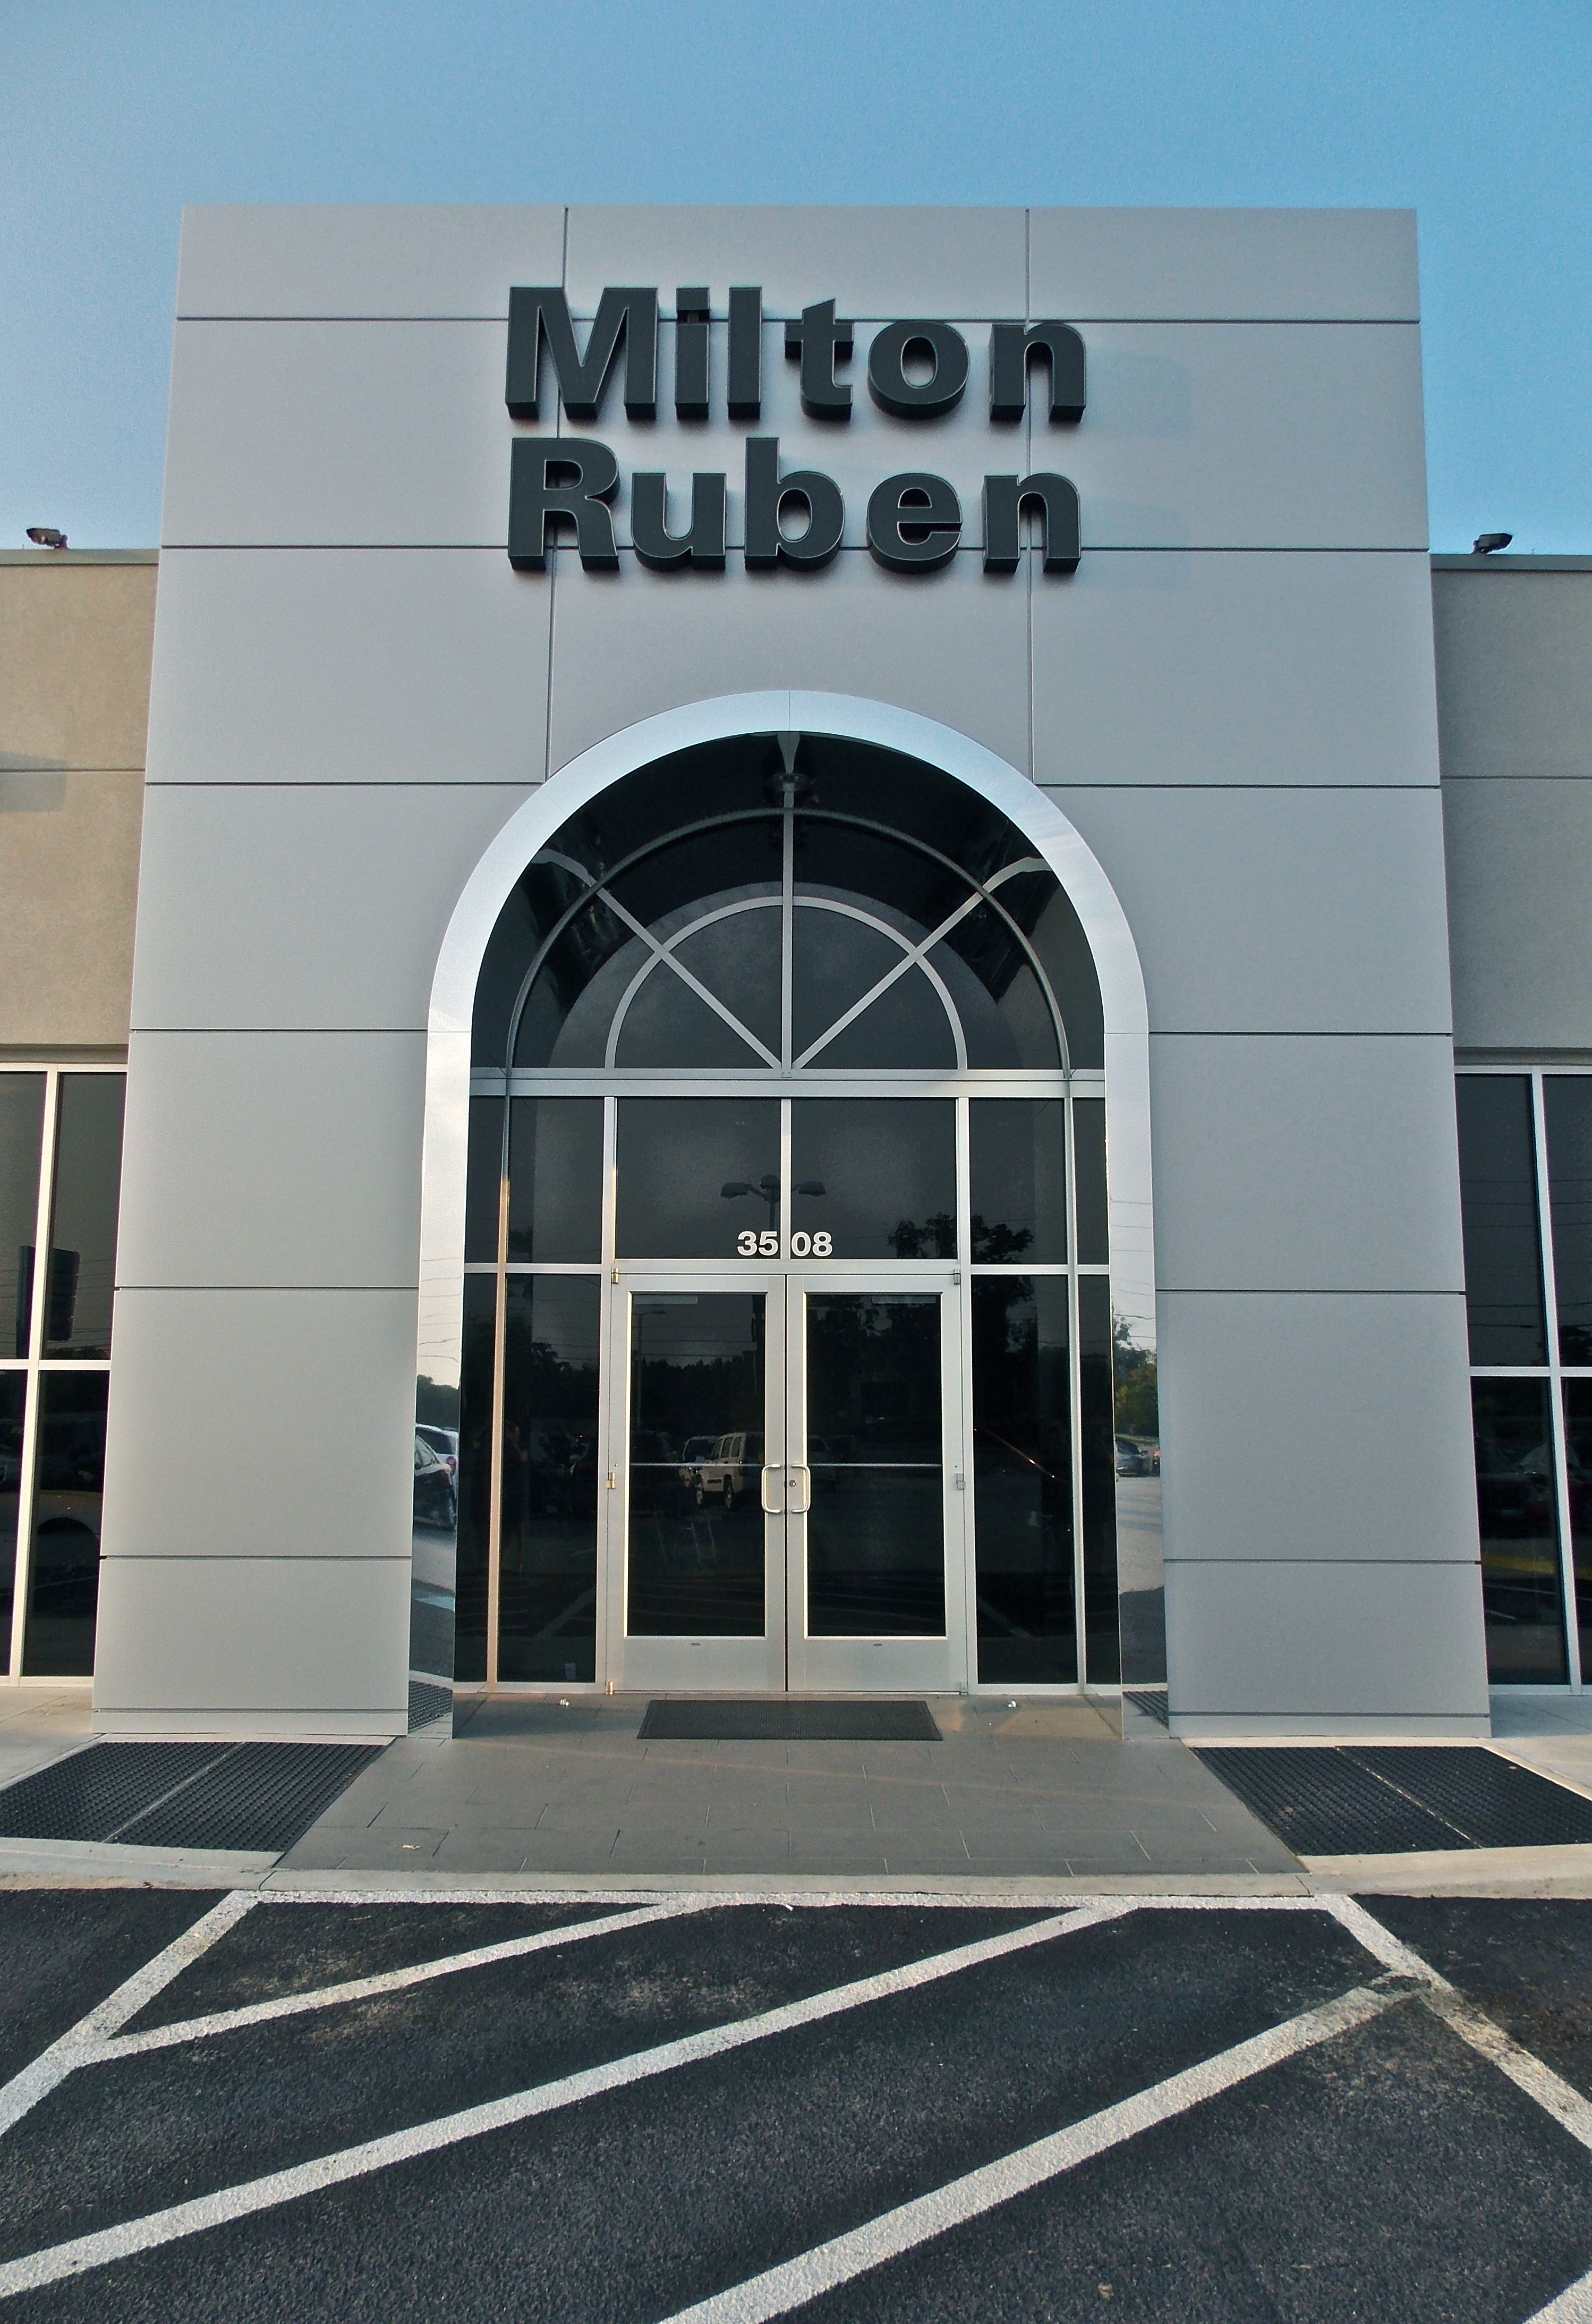 Www Drivebaby Com The Newly Remodeled Milton Ruben Chrysler Jeep Dodge Preowned Building Drivebaby Rubens Jeep Dodge Chrysler Jeep